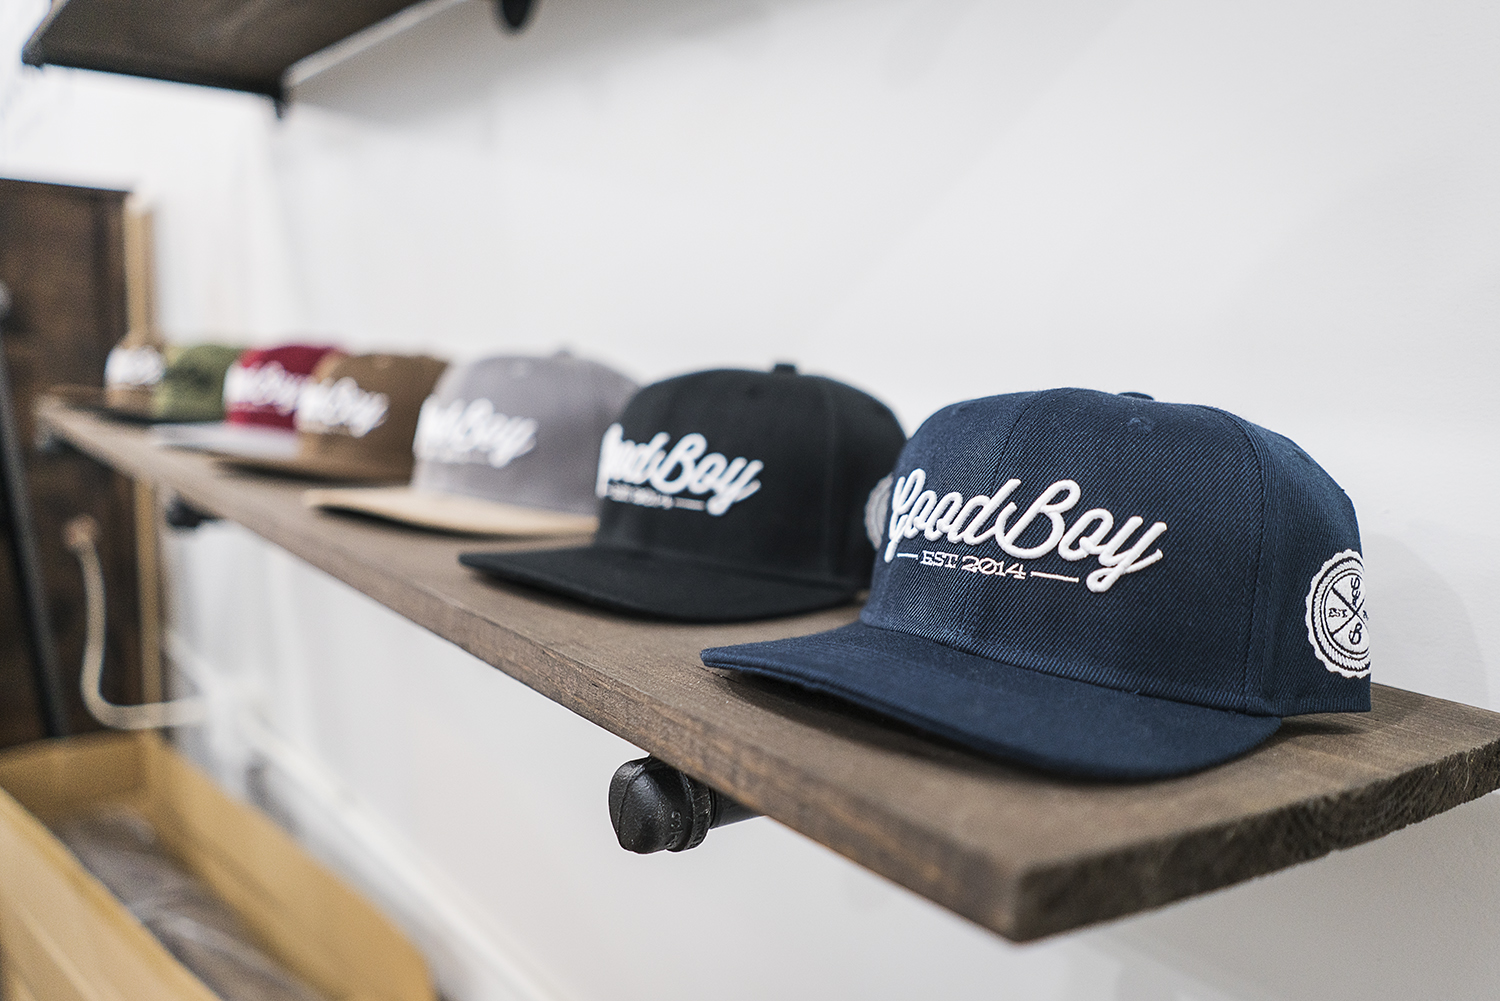 Shelves are lined with brand new merchandise in the new GoodBoy Clothing showroom in downtown Flint. The crew at GoodBoy has been preparing tirelessly for the upcoming grand opening event on Friday, November 17, 2017.